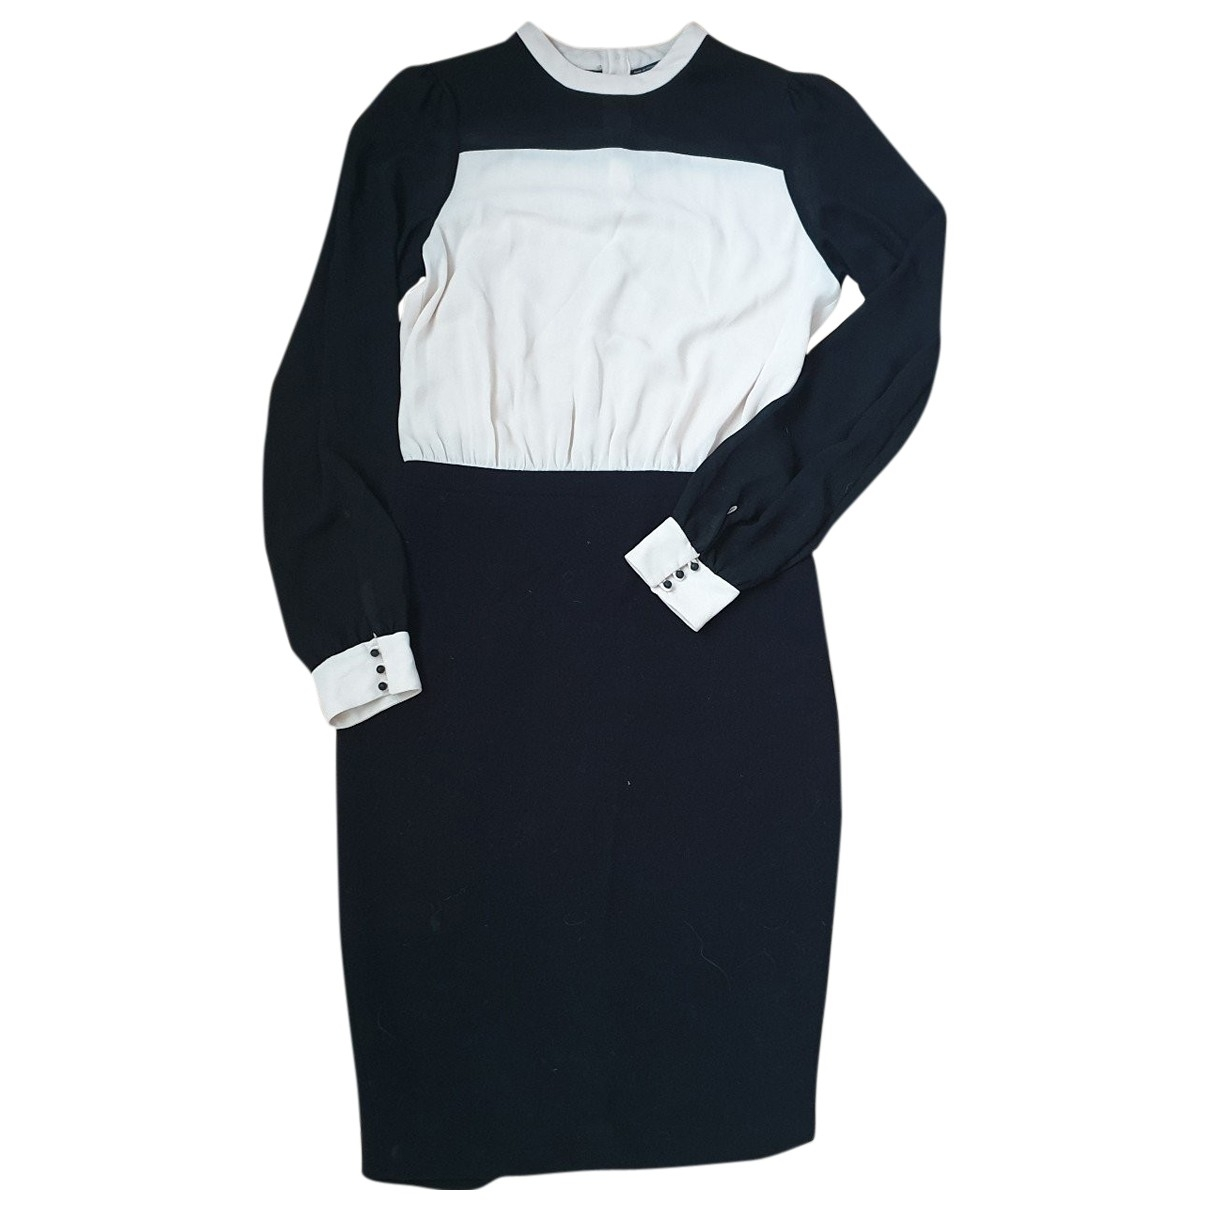 Zara \N dress for Women 40 IT